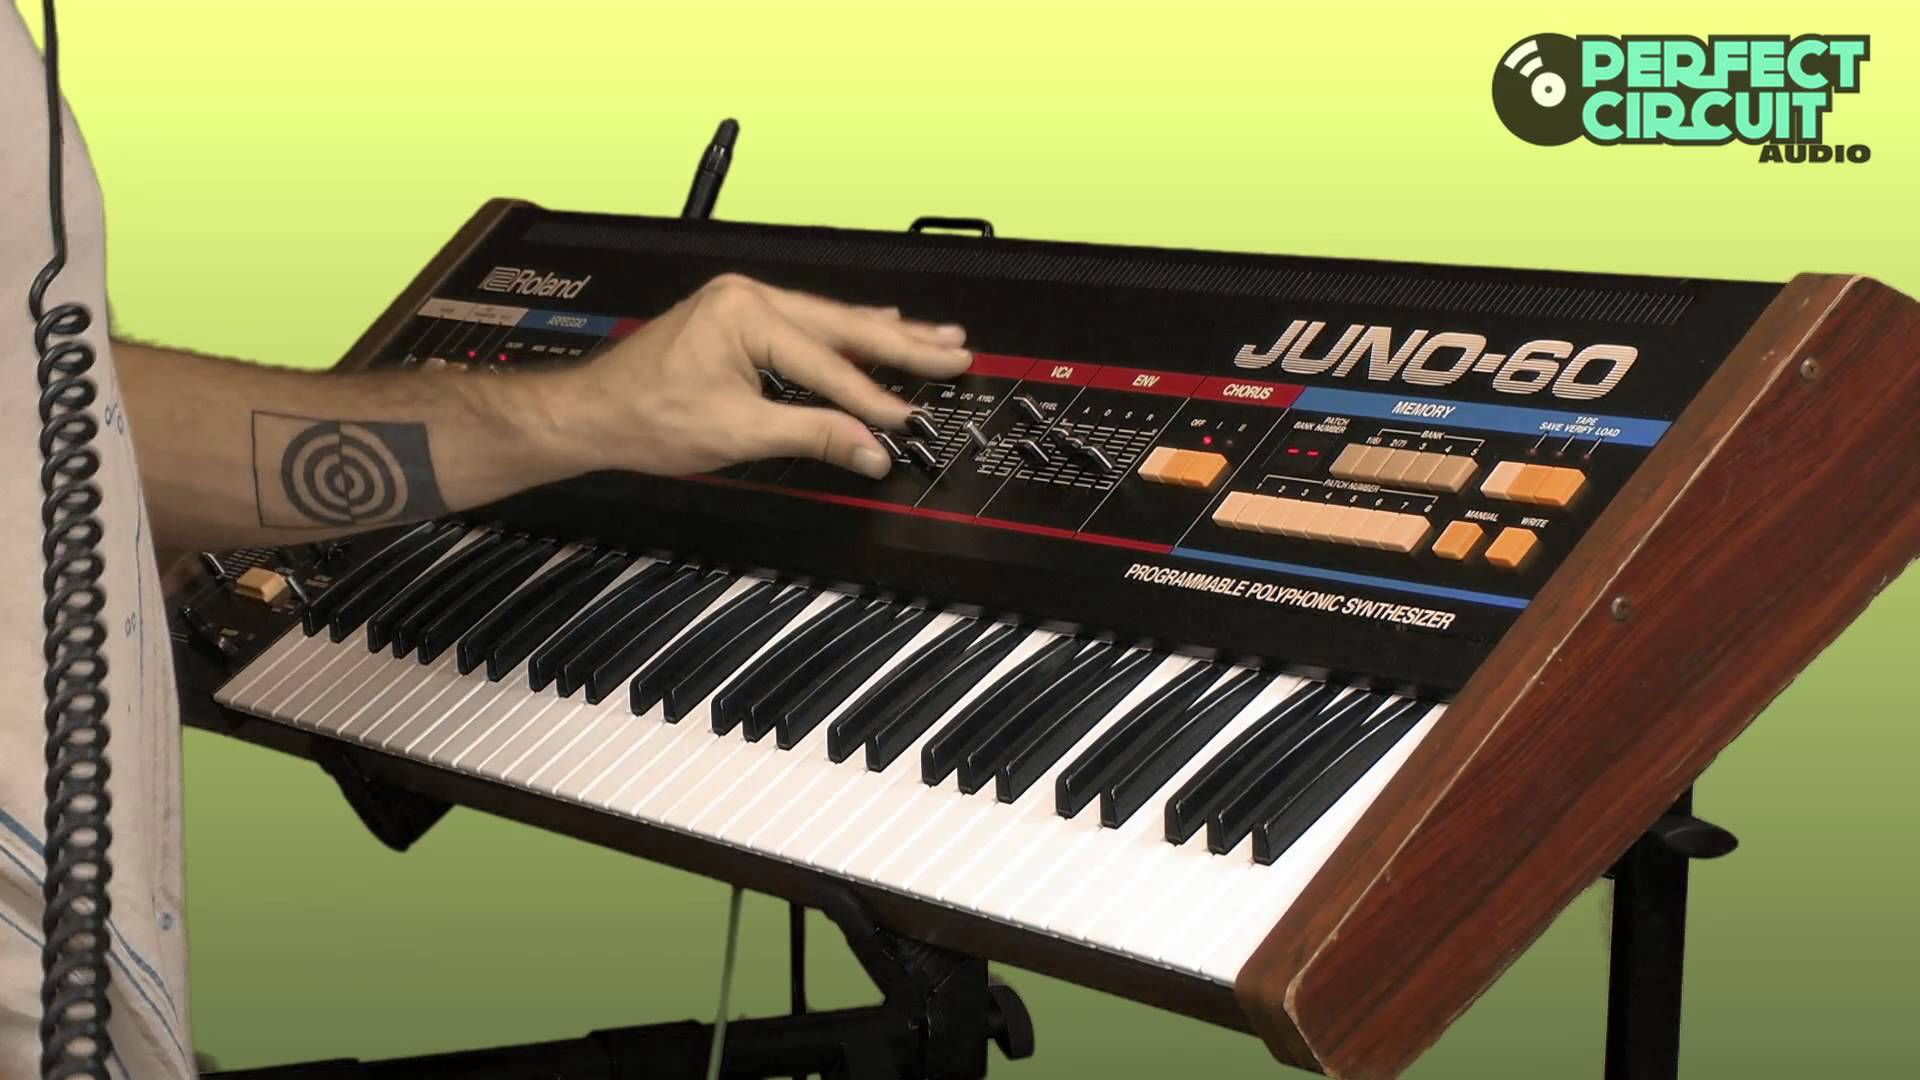 Embedded thumbnail for Juno-60 > YouTube